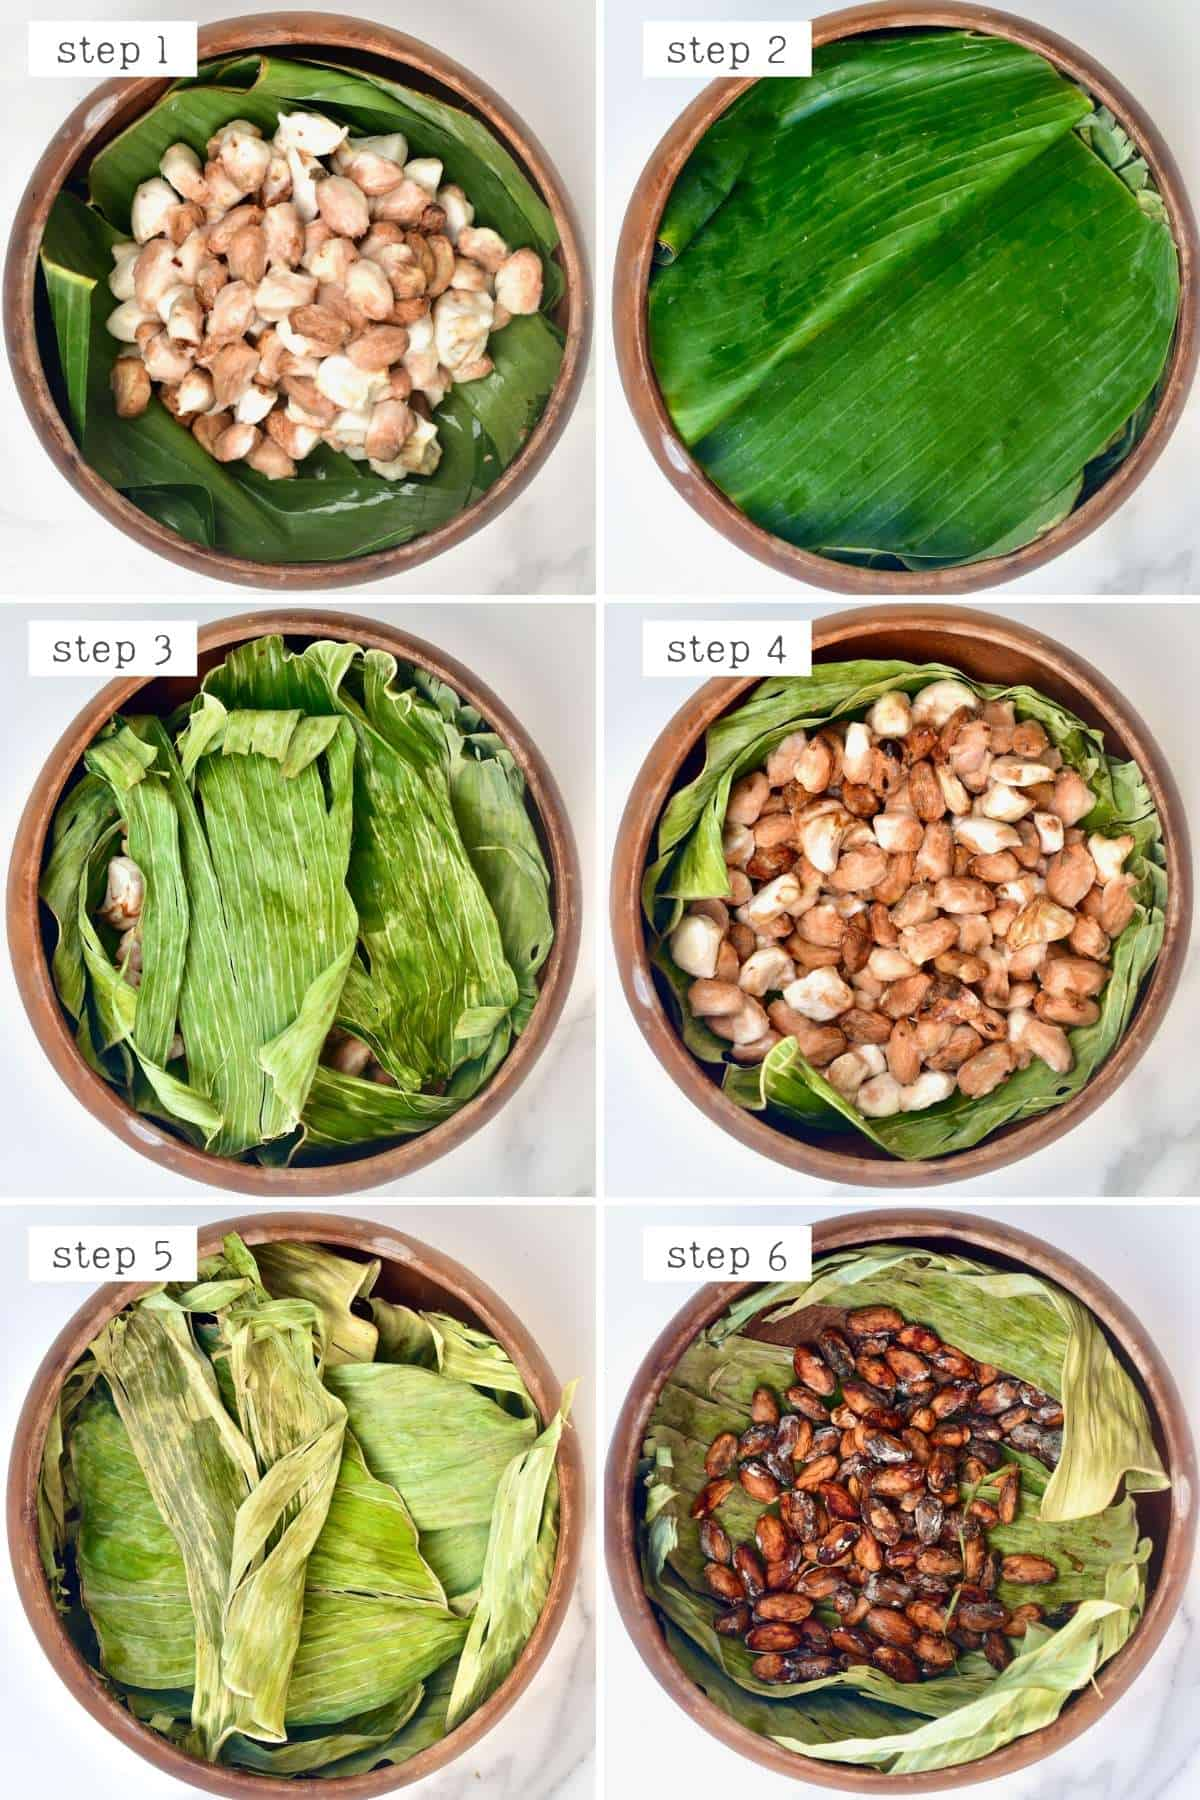 Steps for fermenting cacao beans with banana leaves